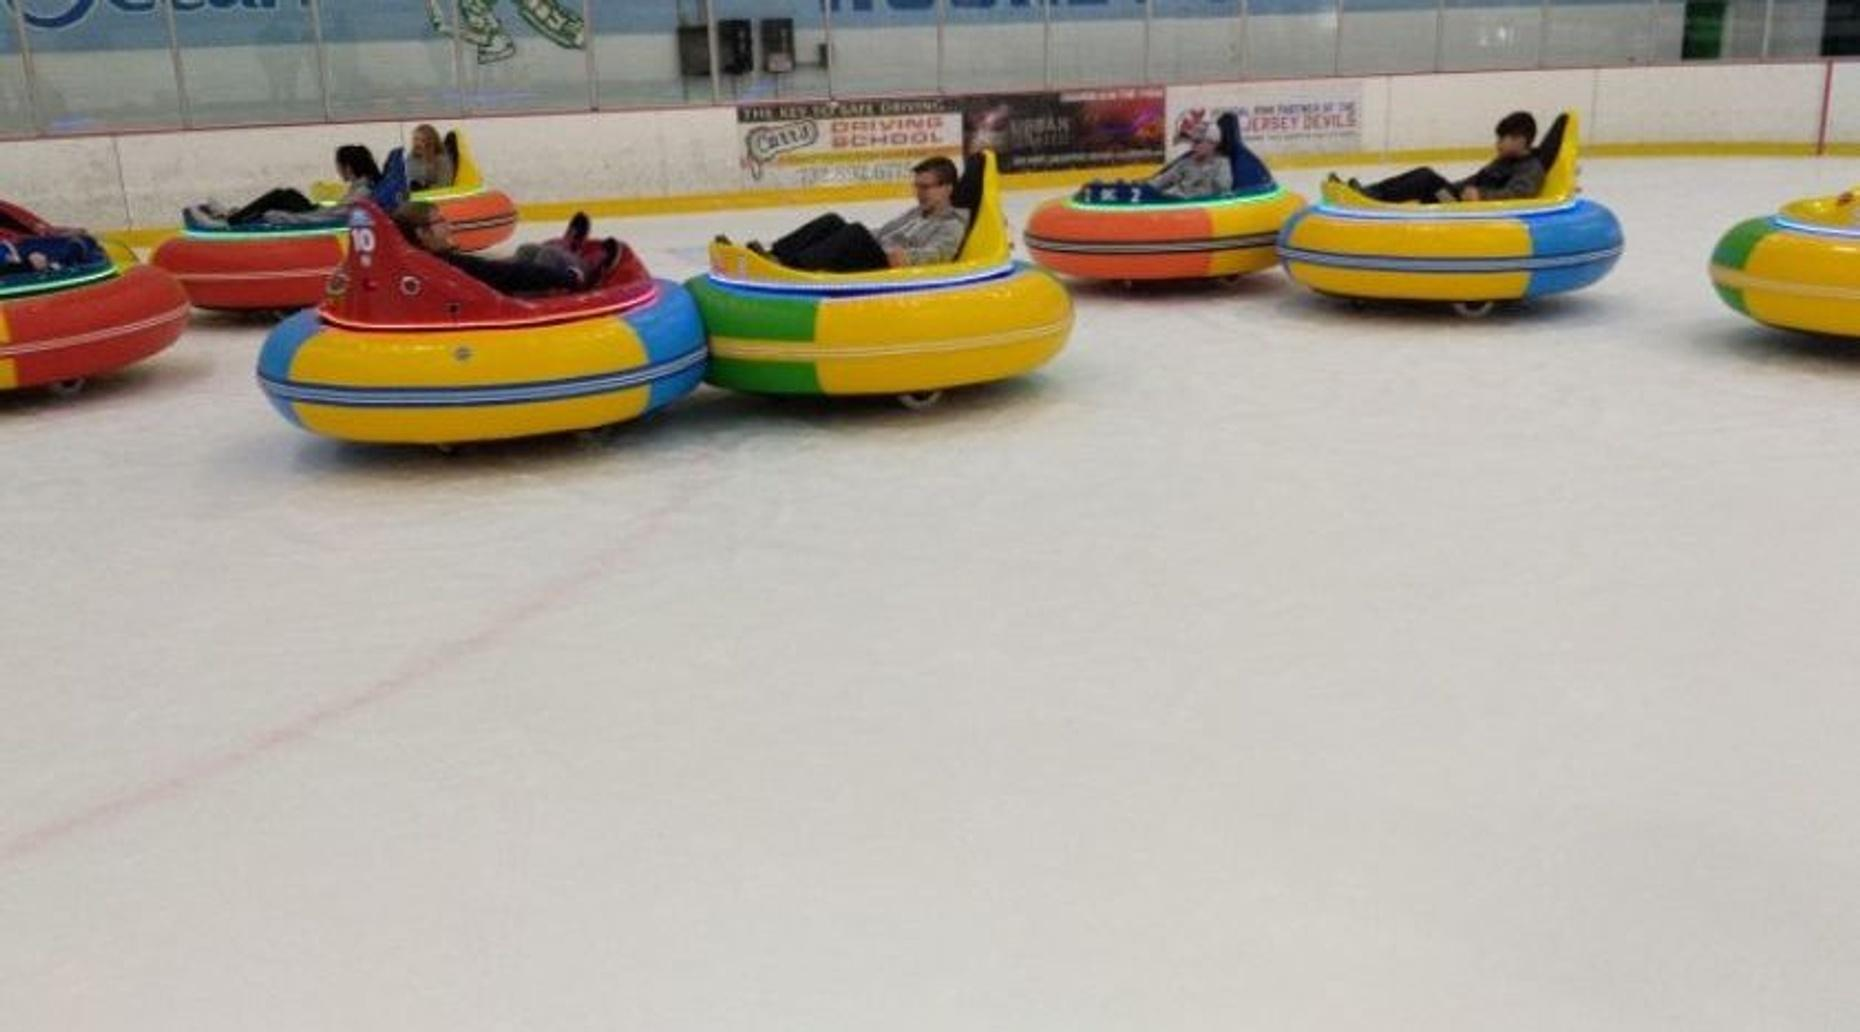 Disco Ice Bumper Car Ride in Brick Township